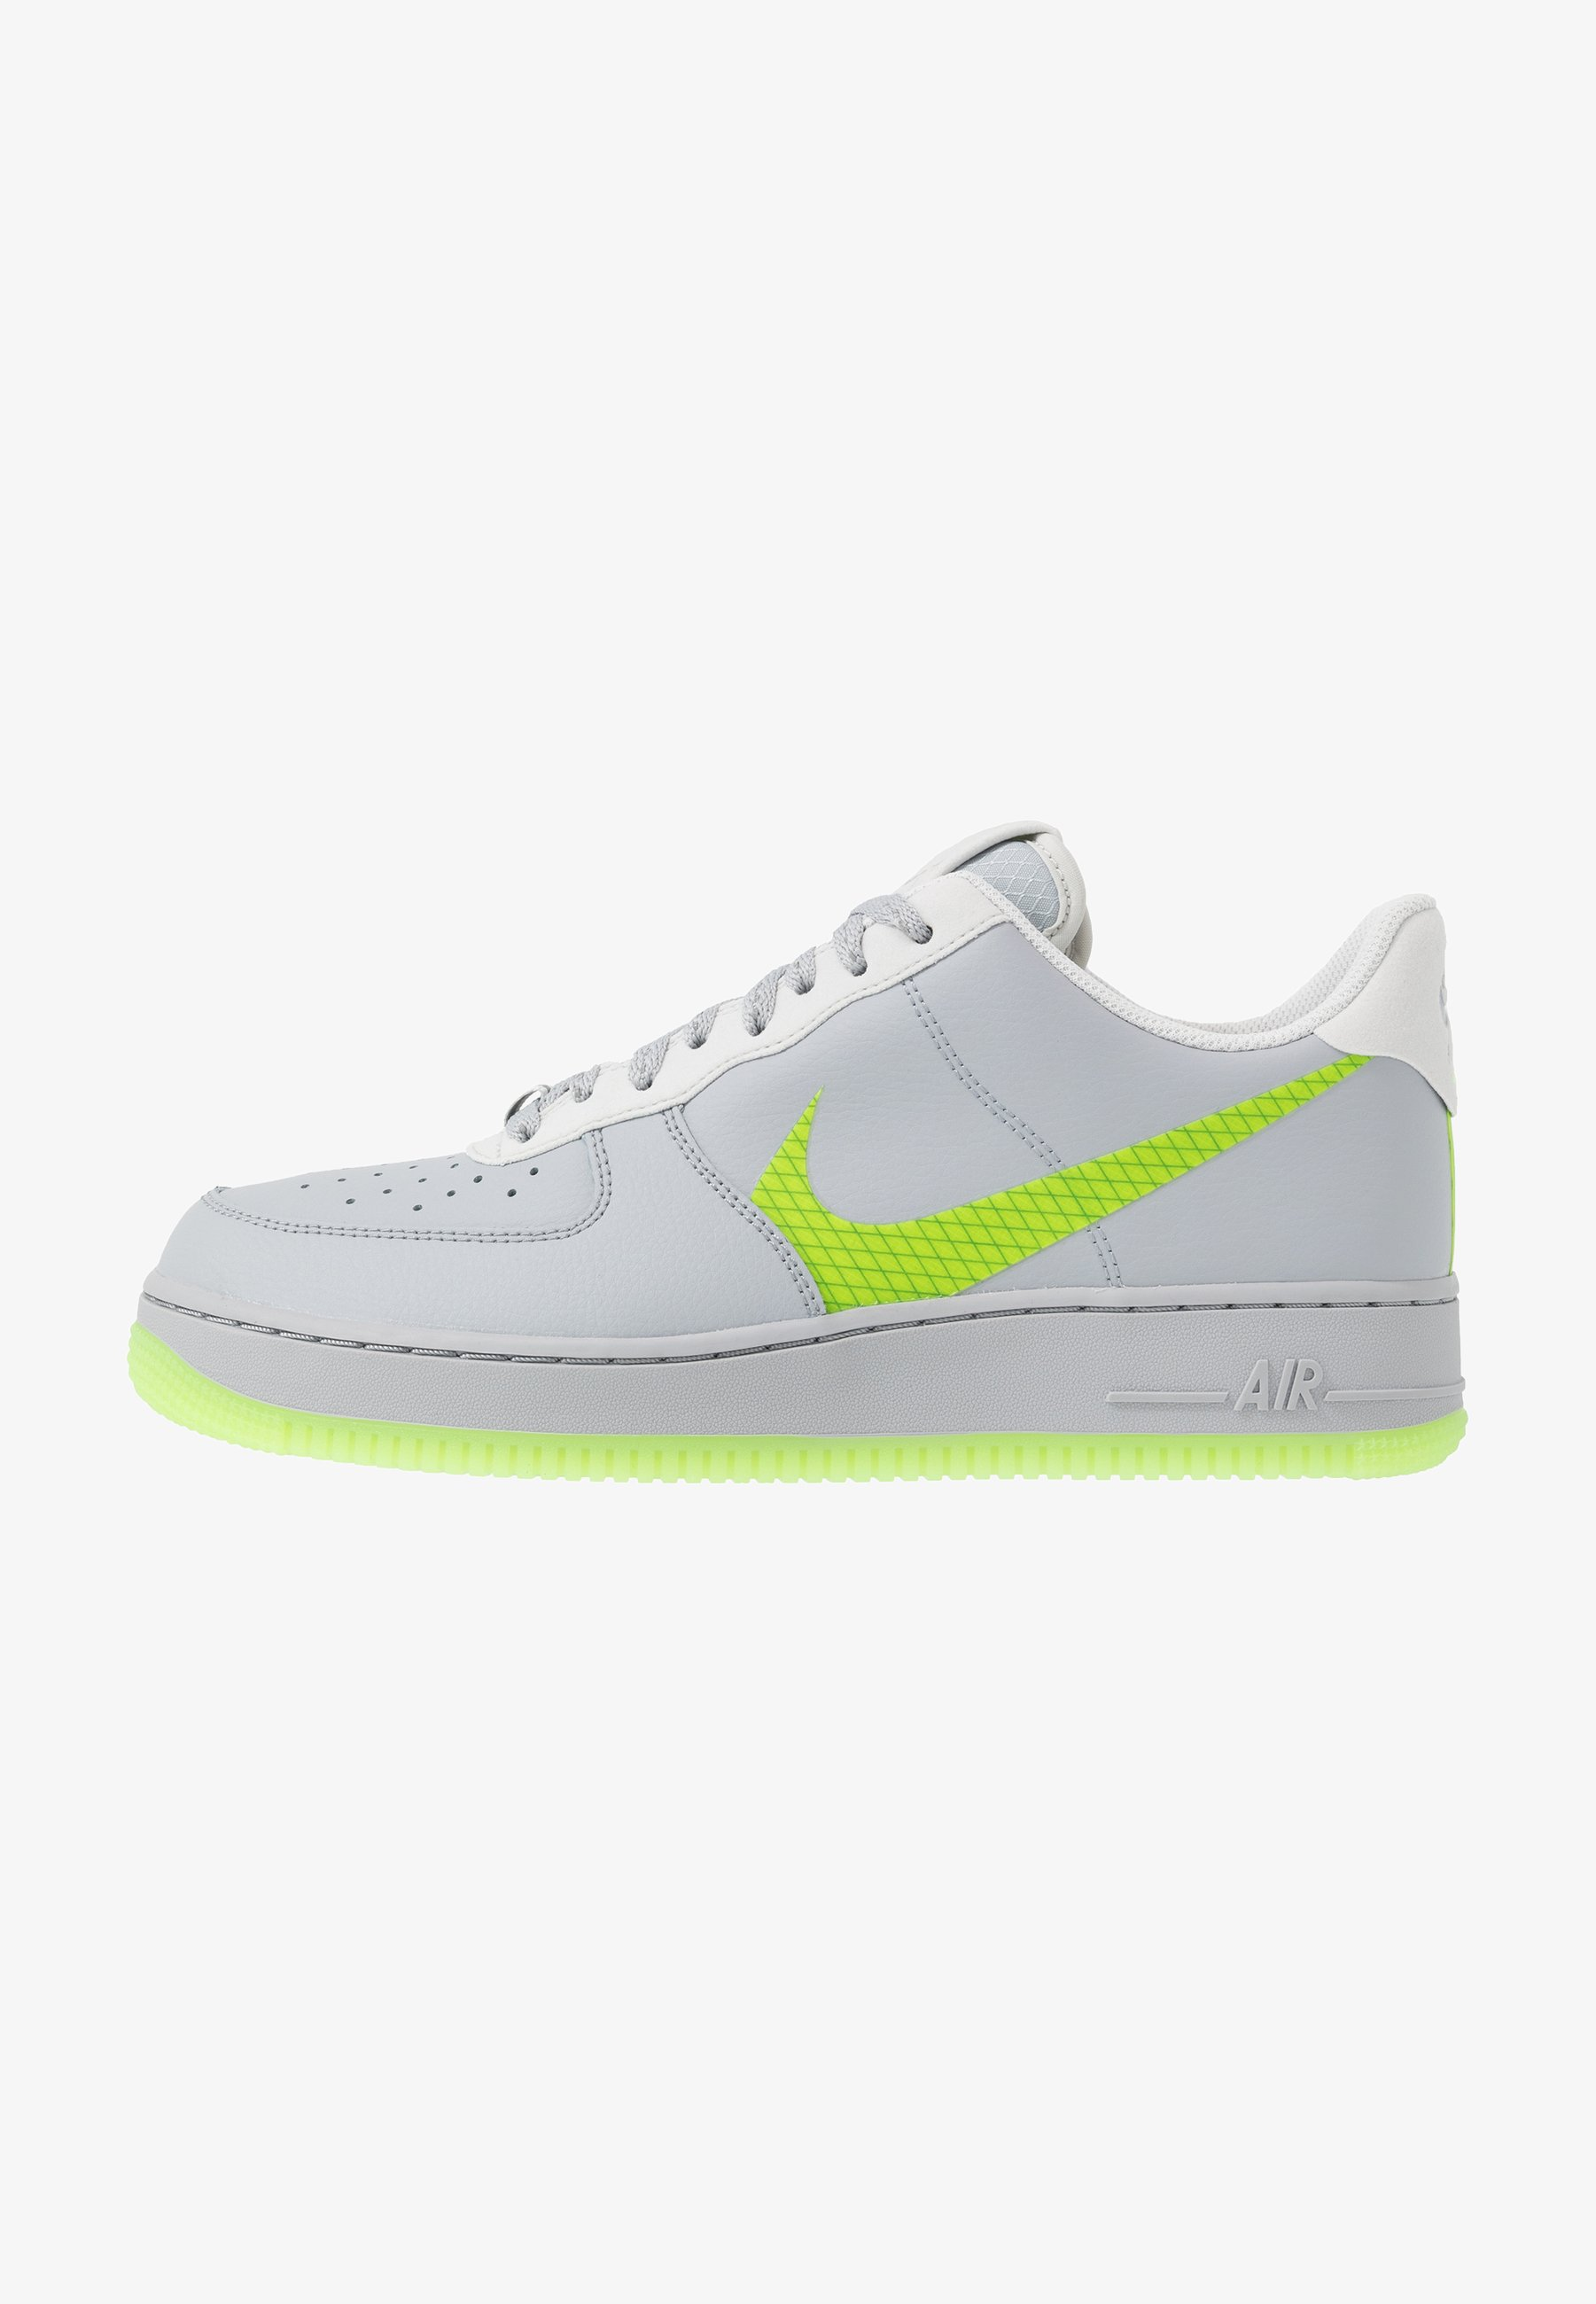 Nike Sportswear Air Force 1 07 Lv8 Sneakers Laag Wolf Grey Ghost Green Photon Dust Black Grijs Zalando Nl